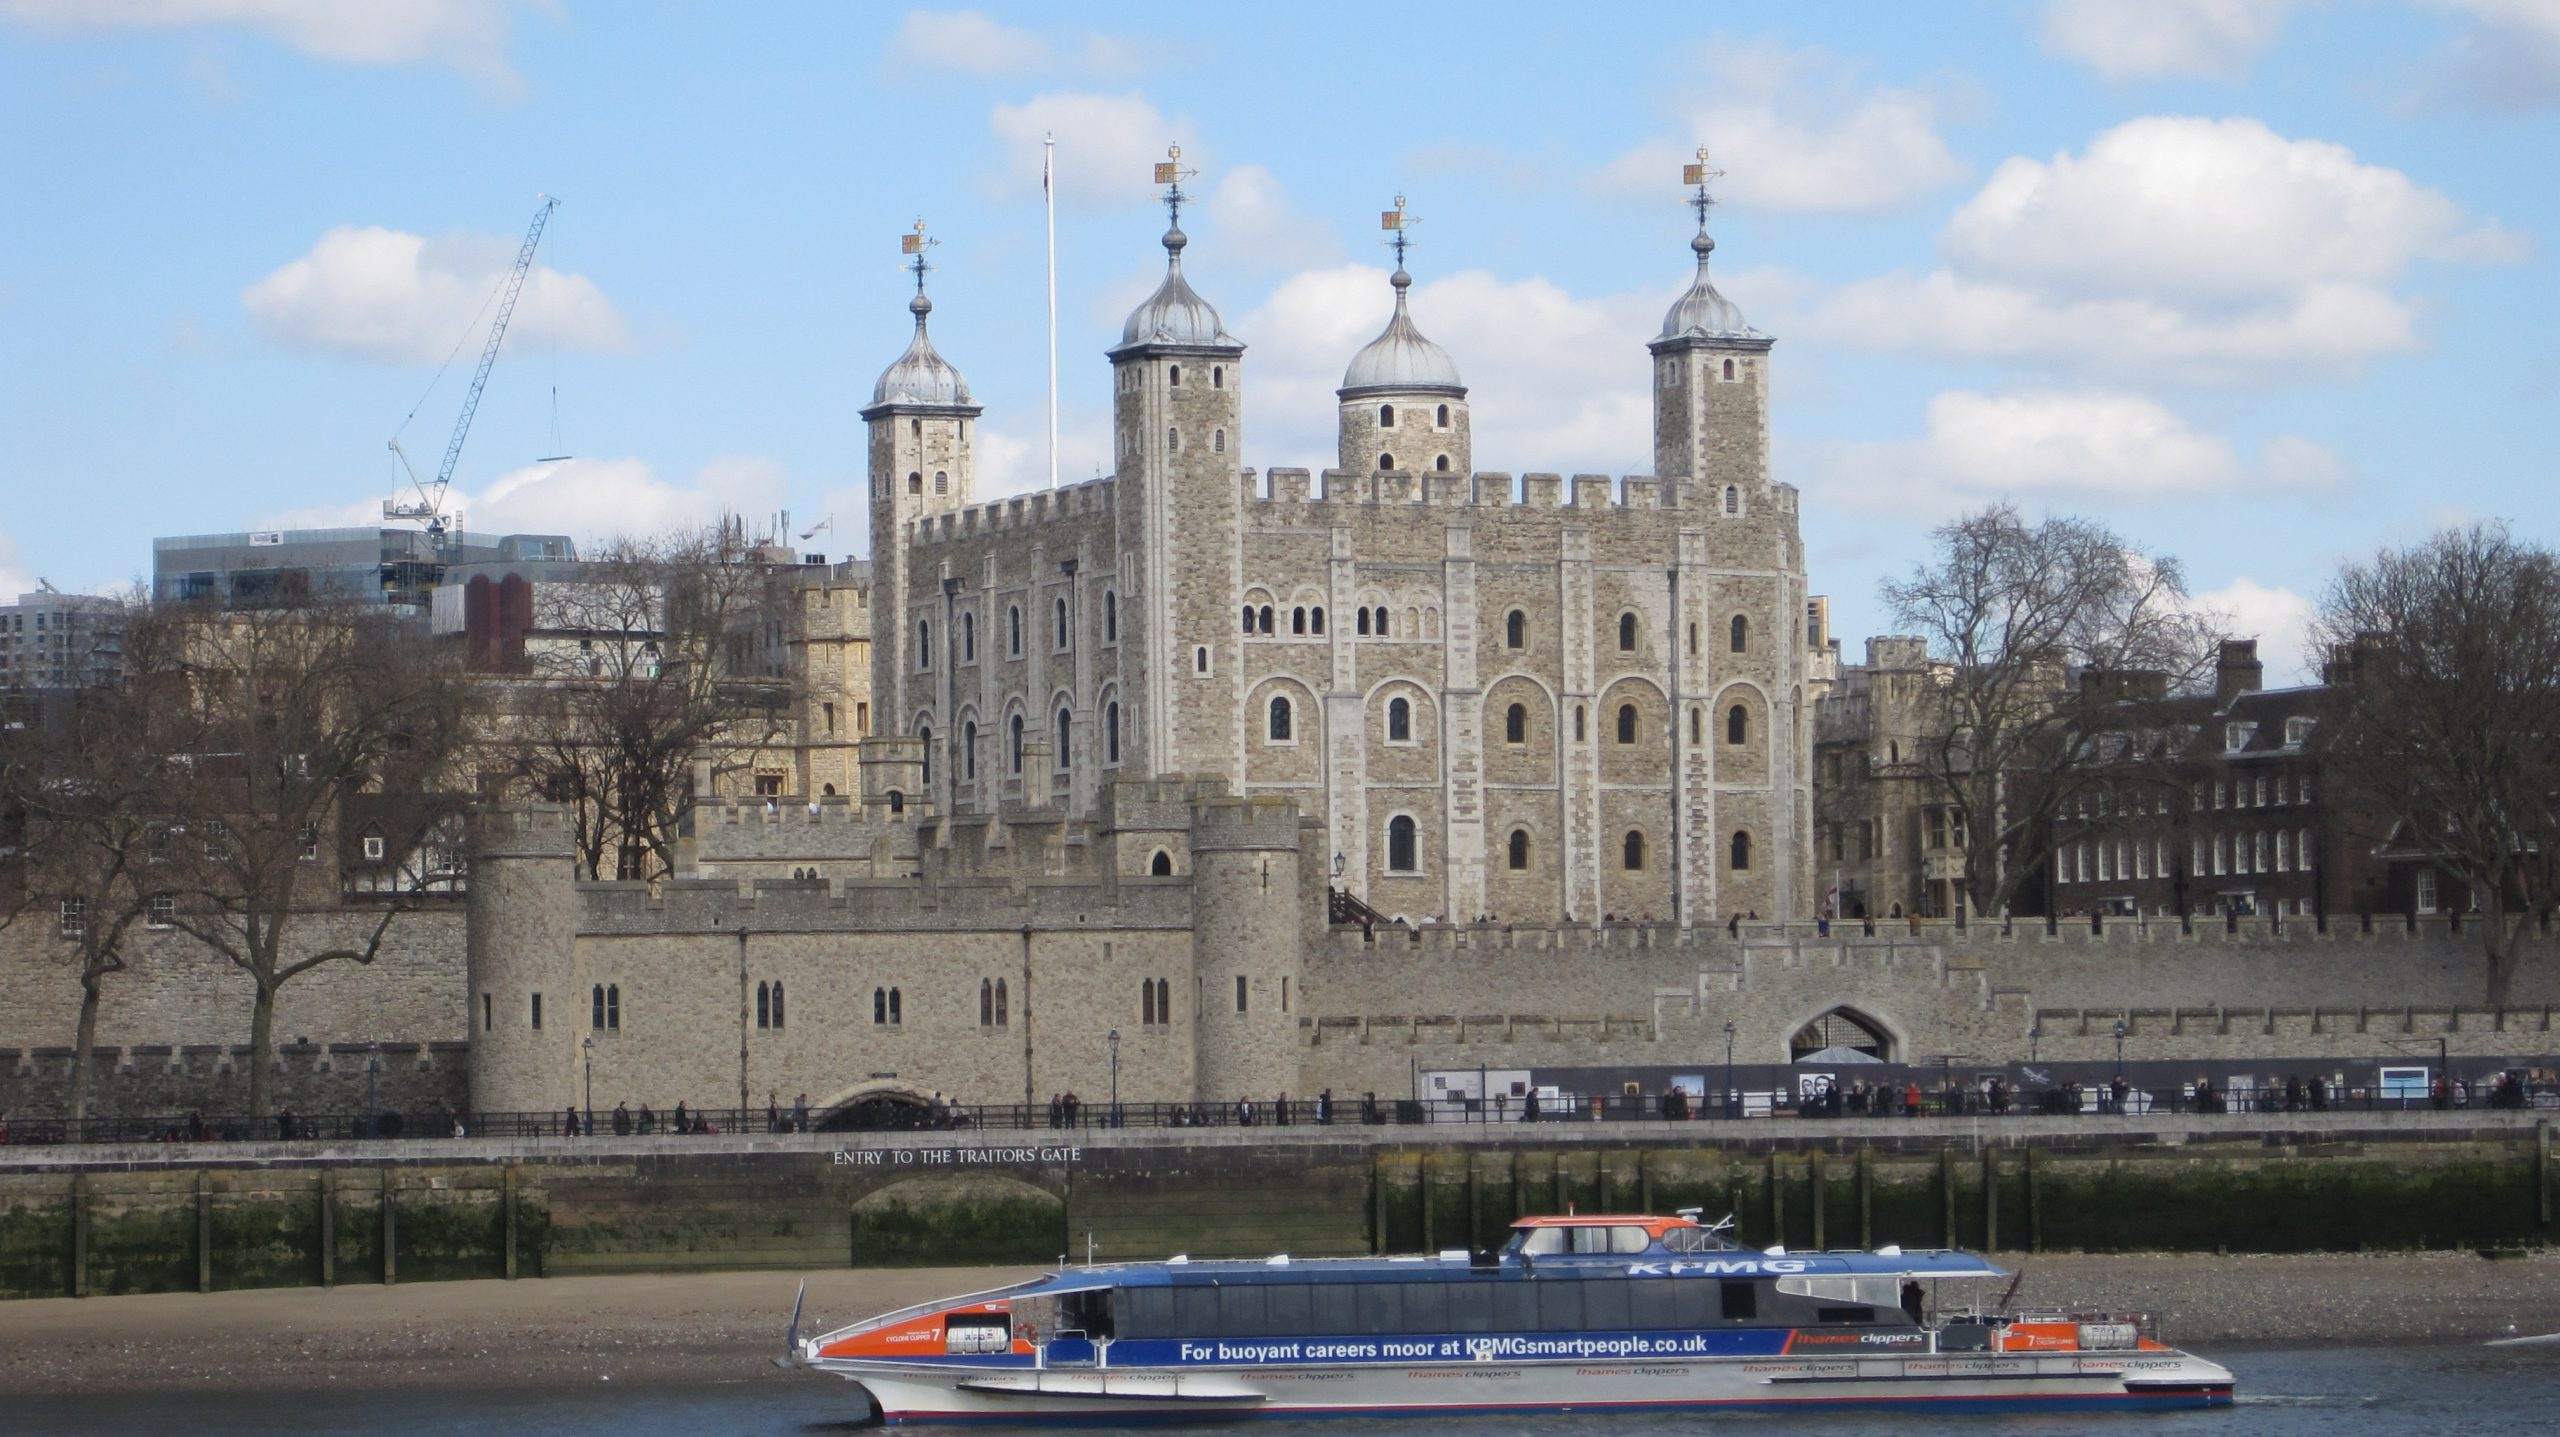 Tower of London by Juliamaud